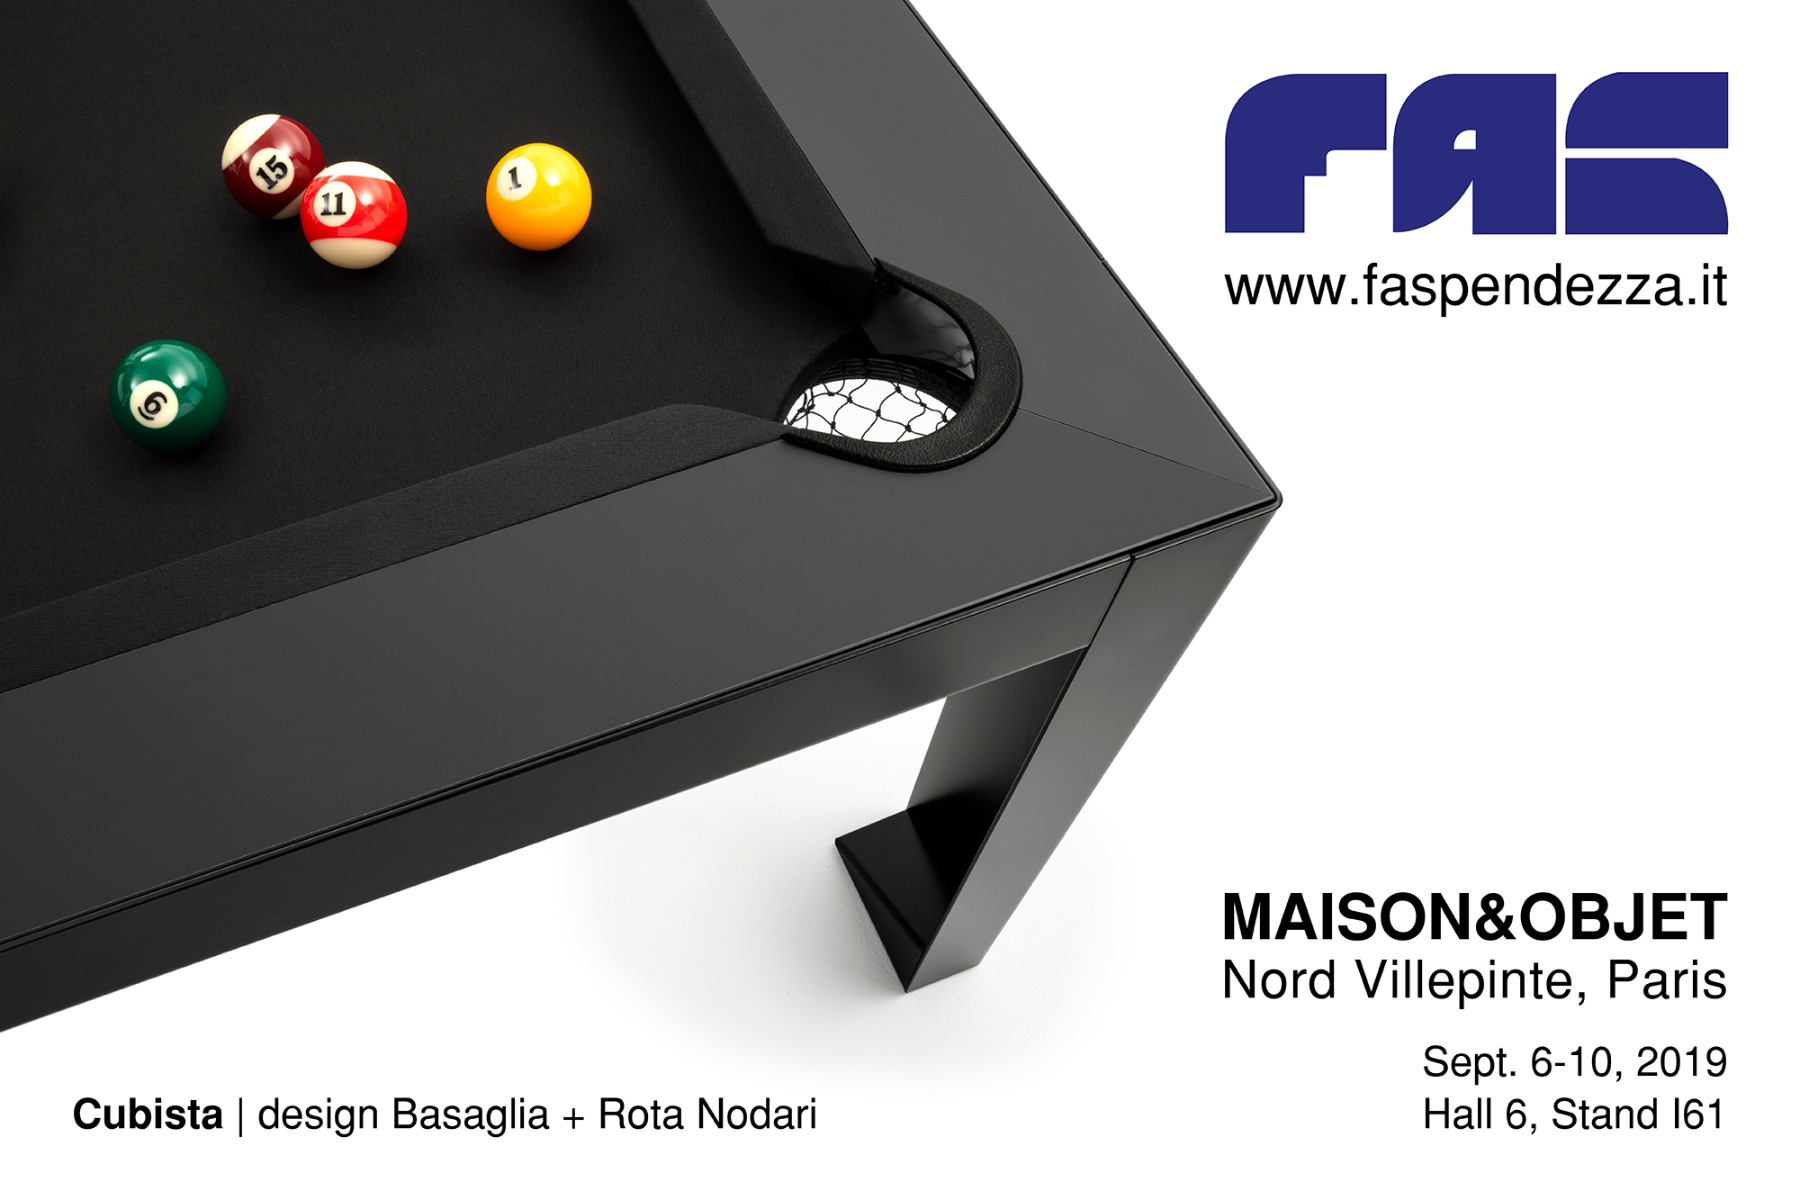 SAVE THE DATE: FAS Pendezza @ Maison&Objet Parigi